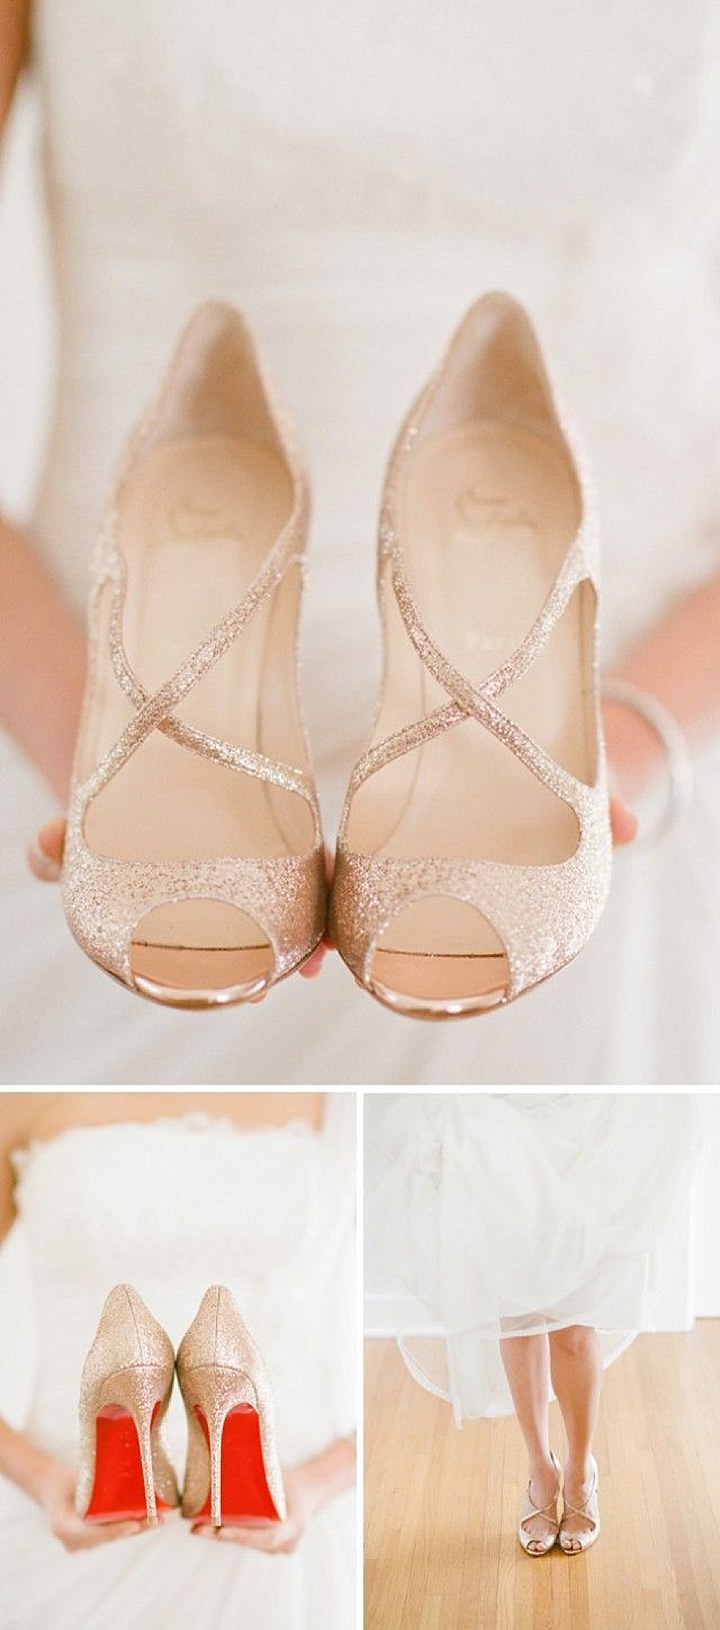 Diary of a Boho Bride - Carmel and Dan, Entry 3: The Wedding Dress and Jimmy Choo Shoes